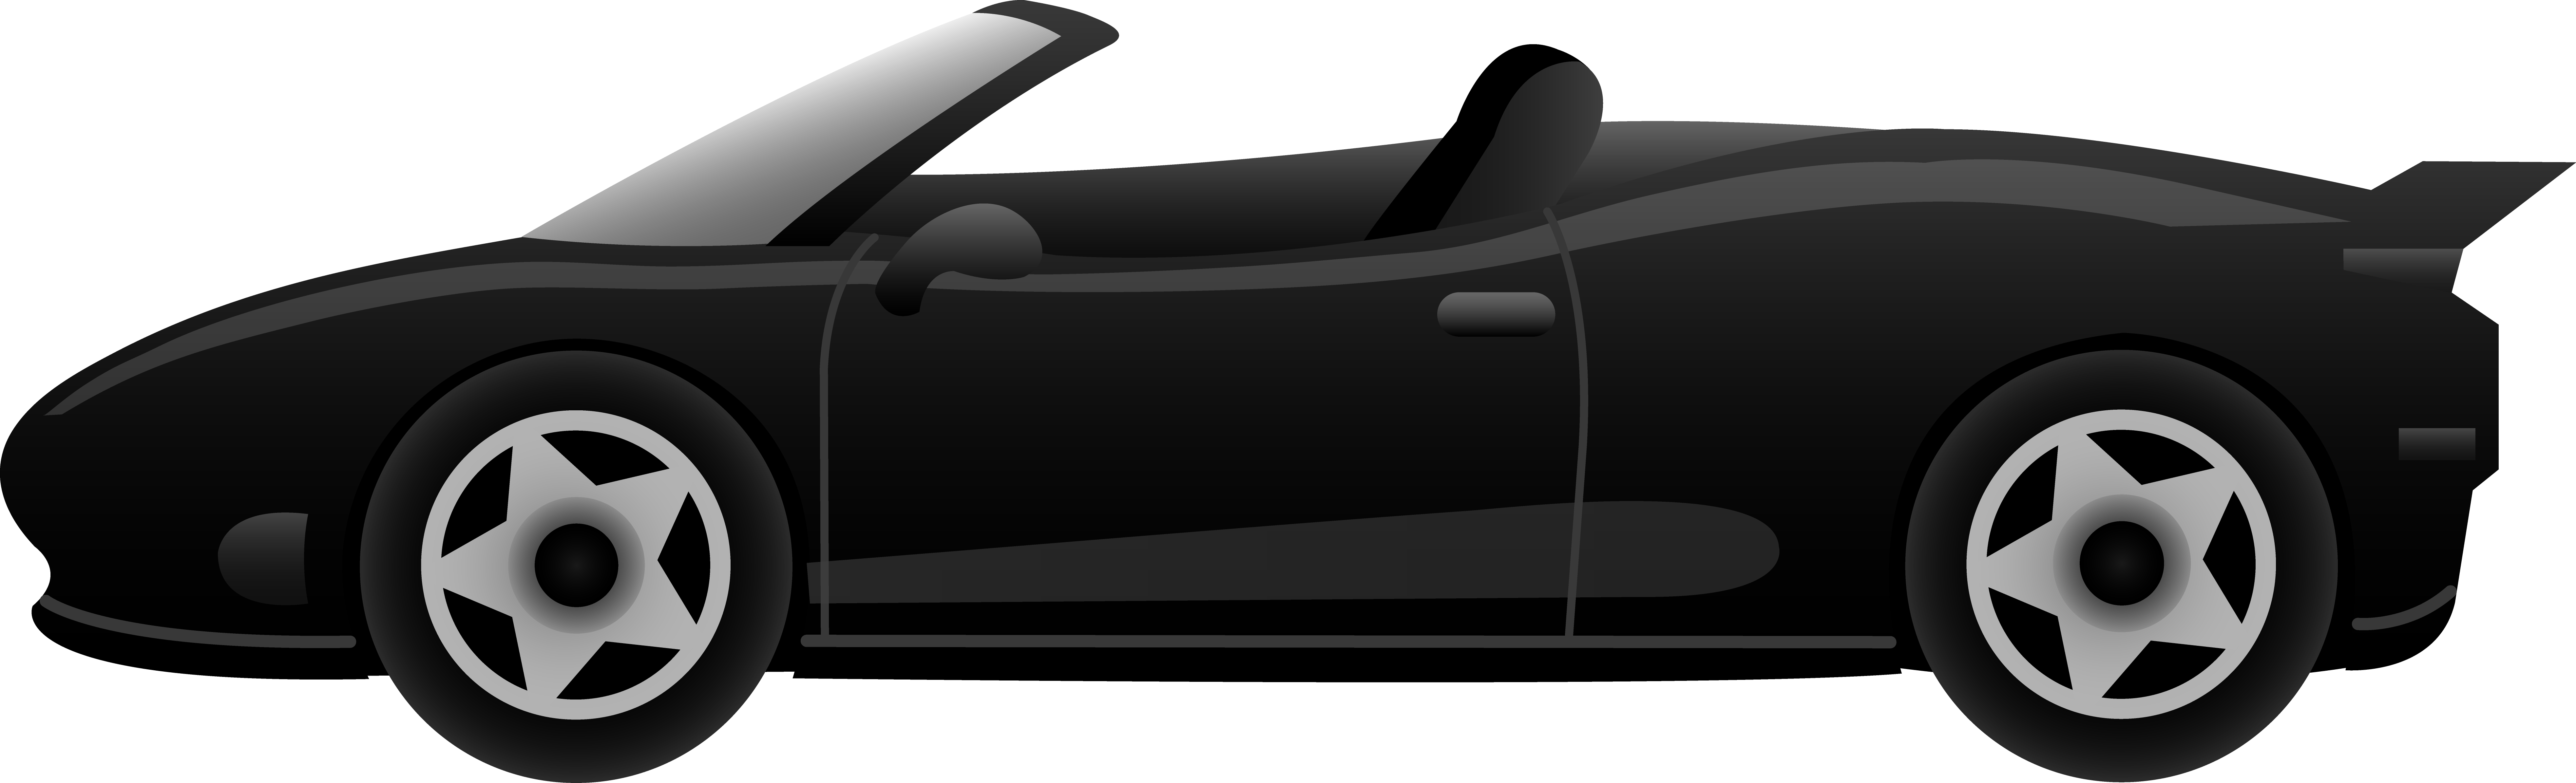 7863x2391 Sports Car Clipart Side View Free Images 6